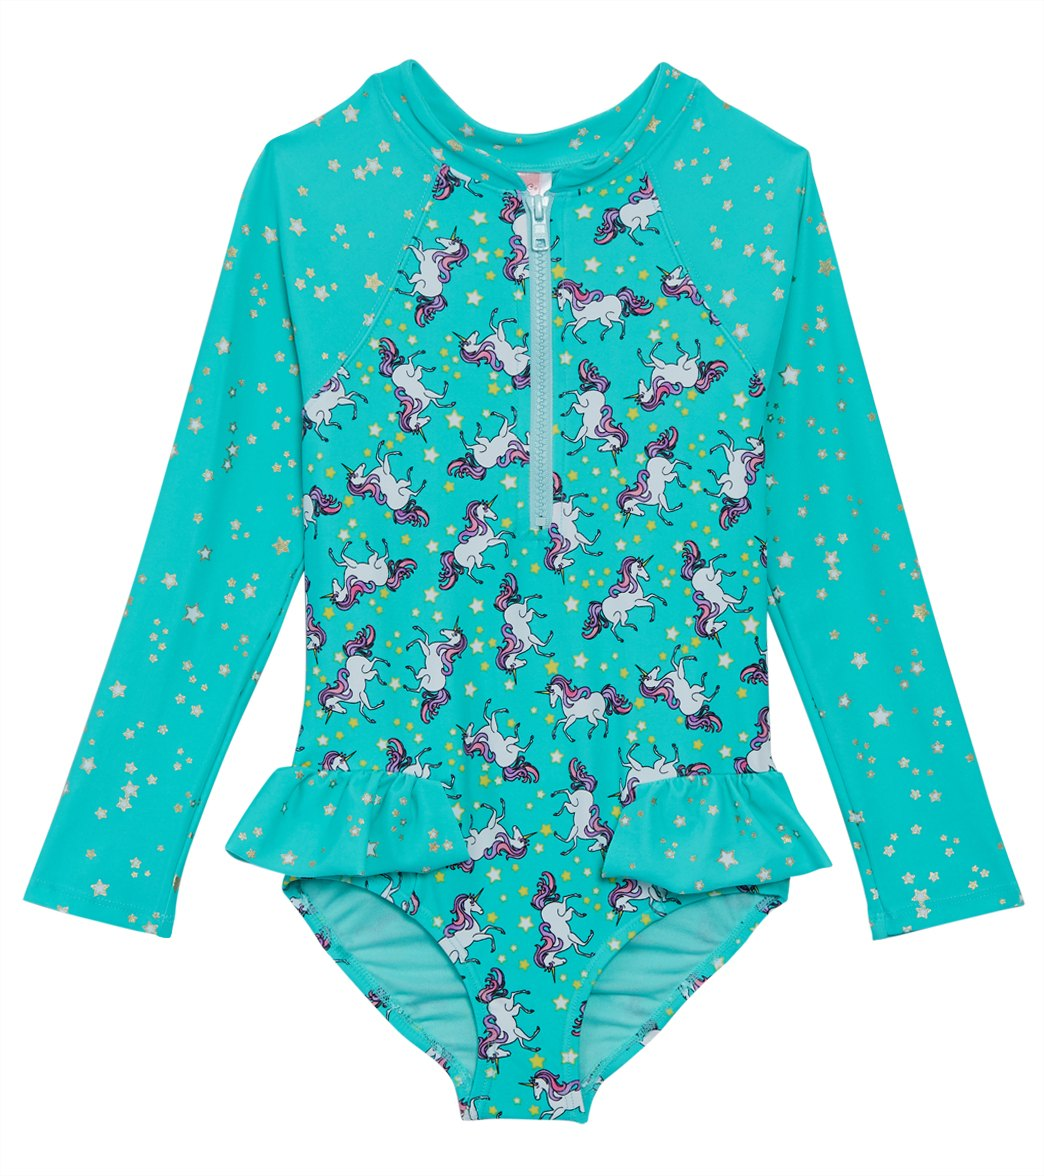 b979918fa92e6 Hula Star Girls' Stardust Dream One Piece Swimsuit (Toddler, Little Kid) at  SwimOutlet.com